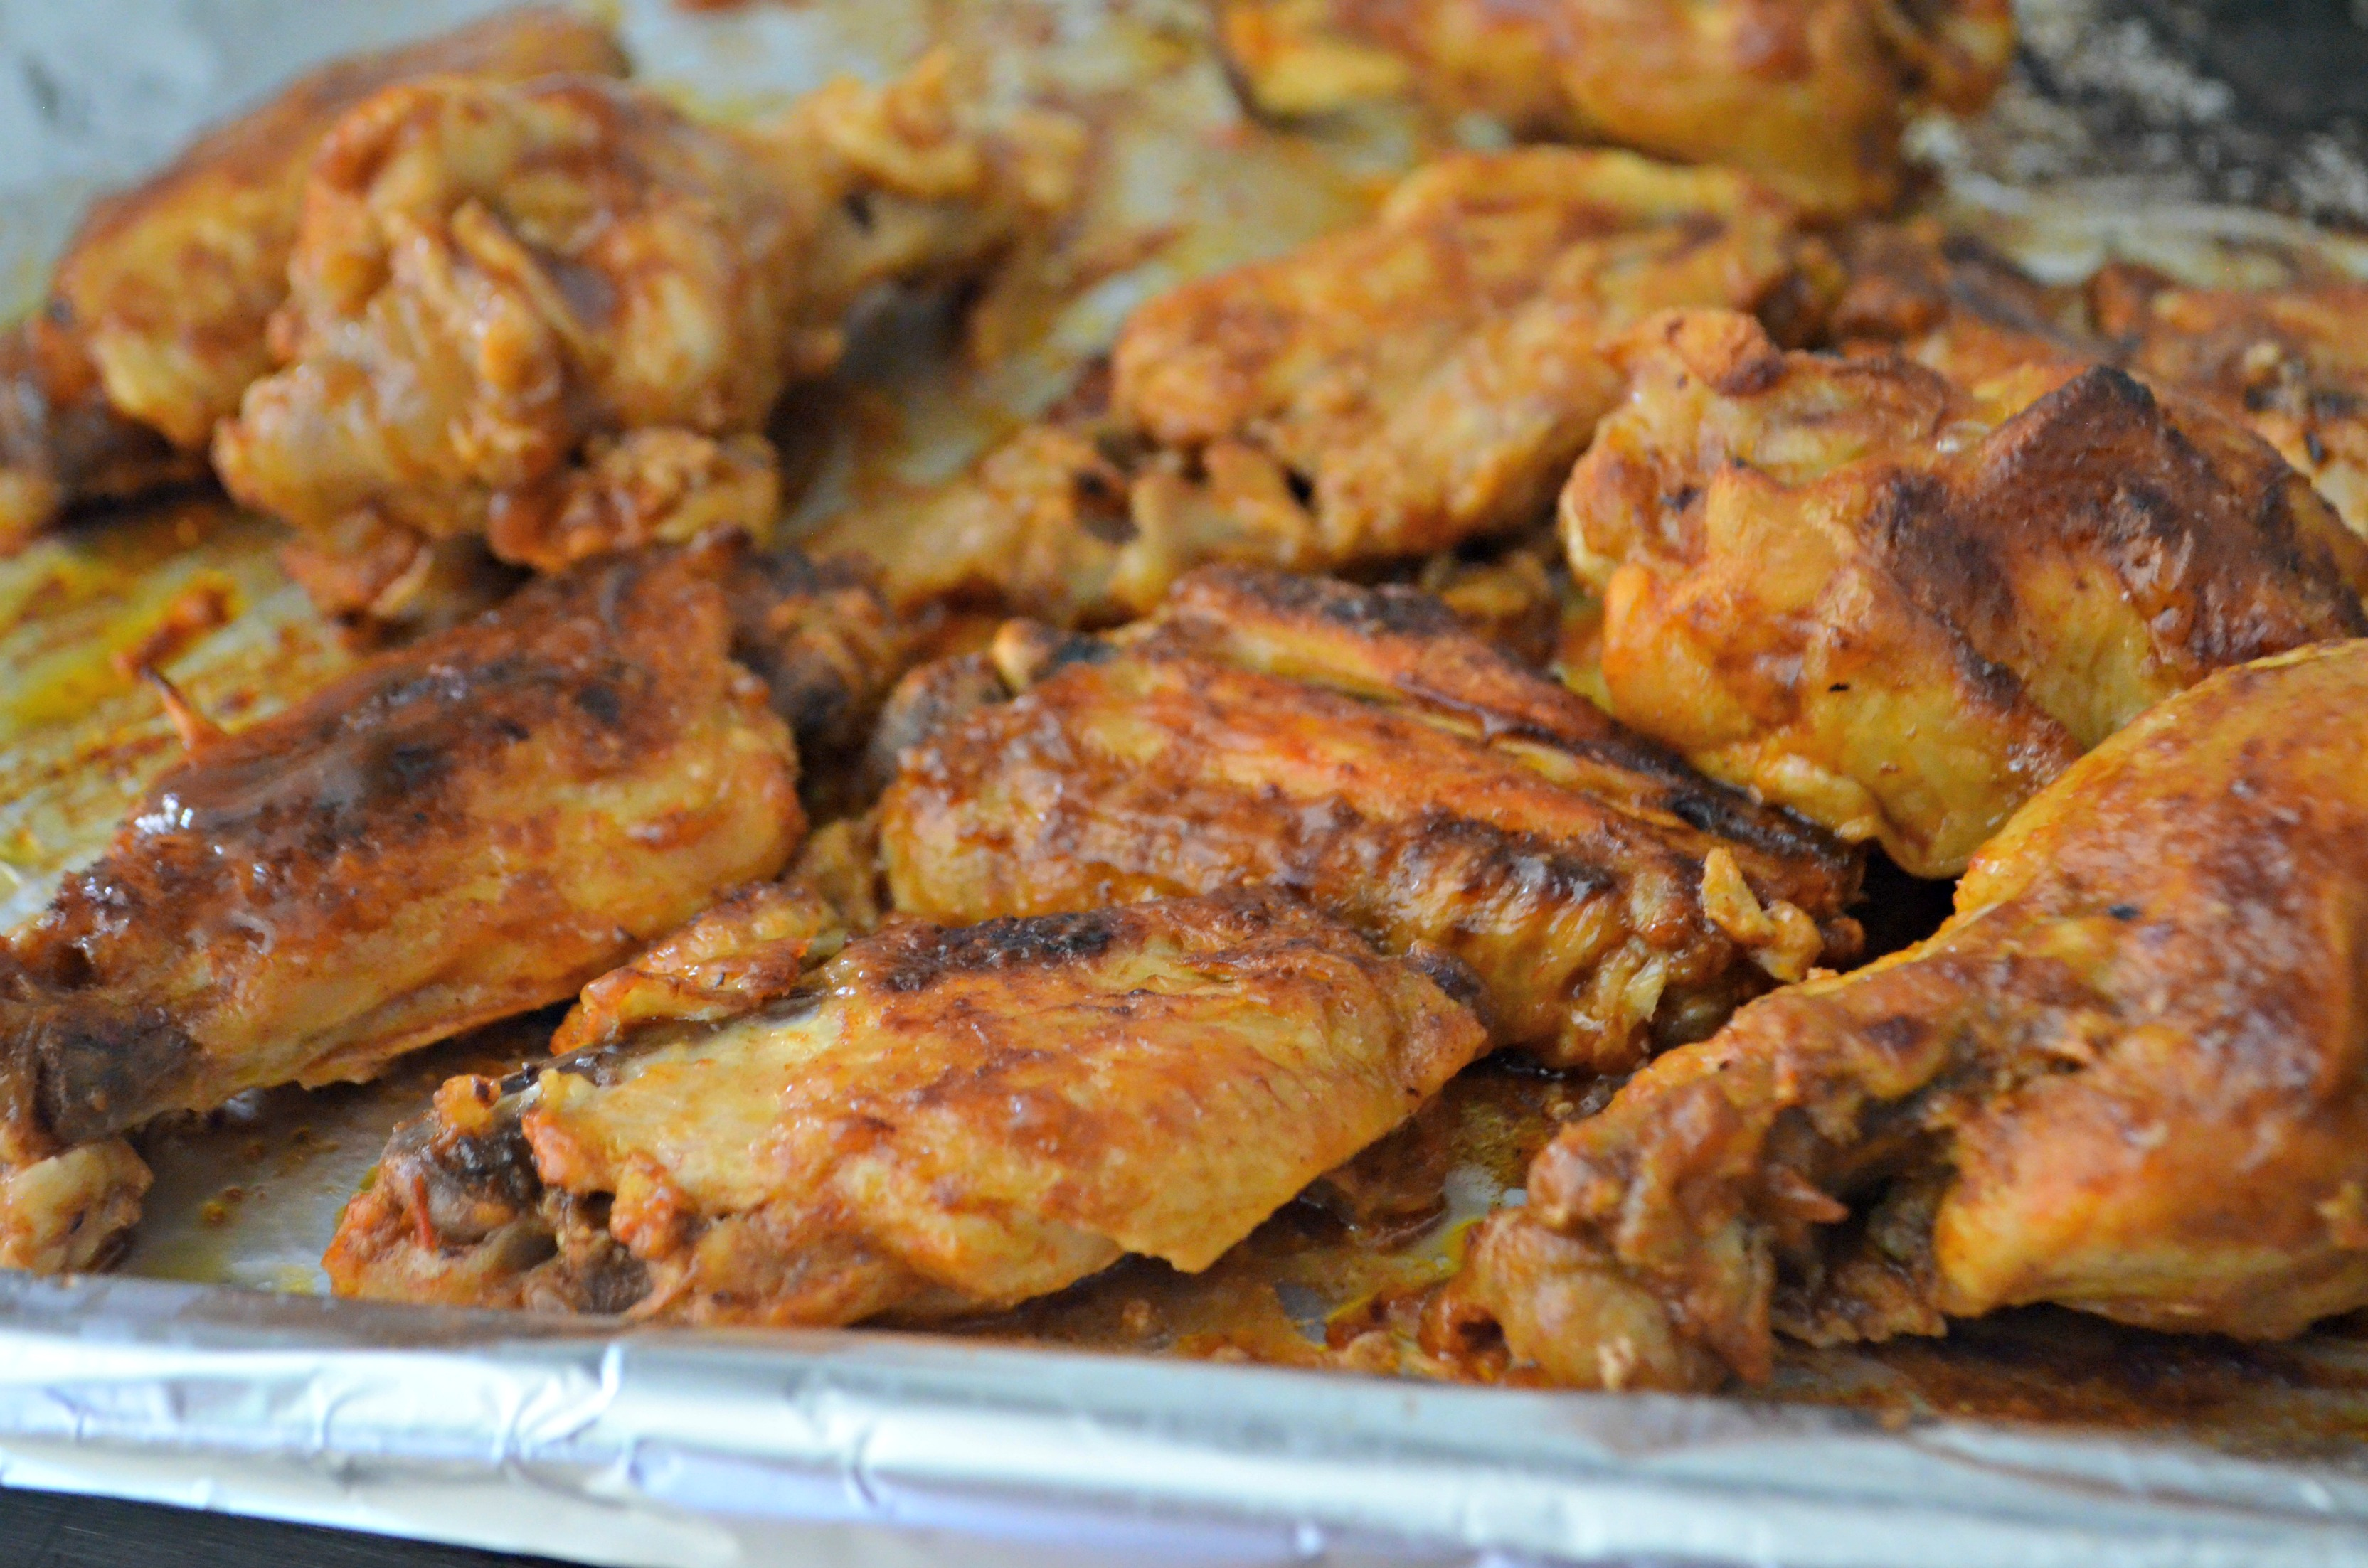 easy slow cooker buffalo bbq chicken wings - Wings on a pan after broiling briefly